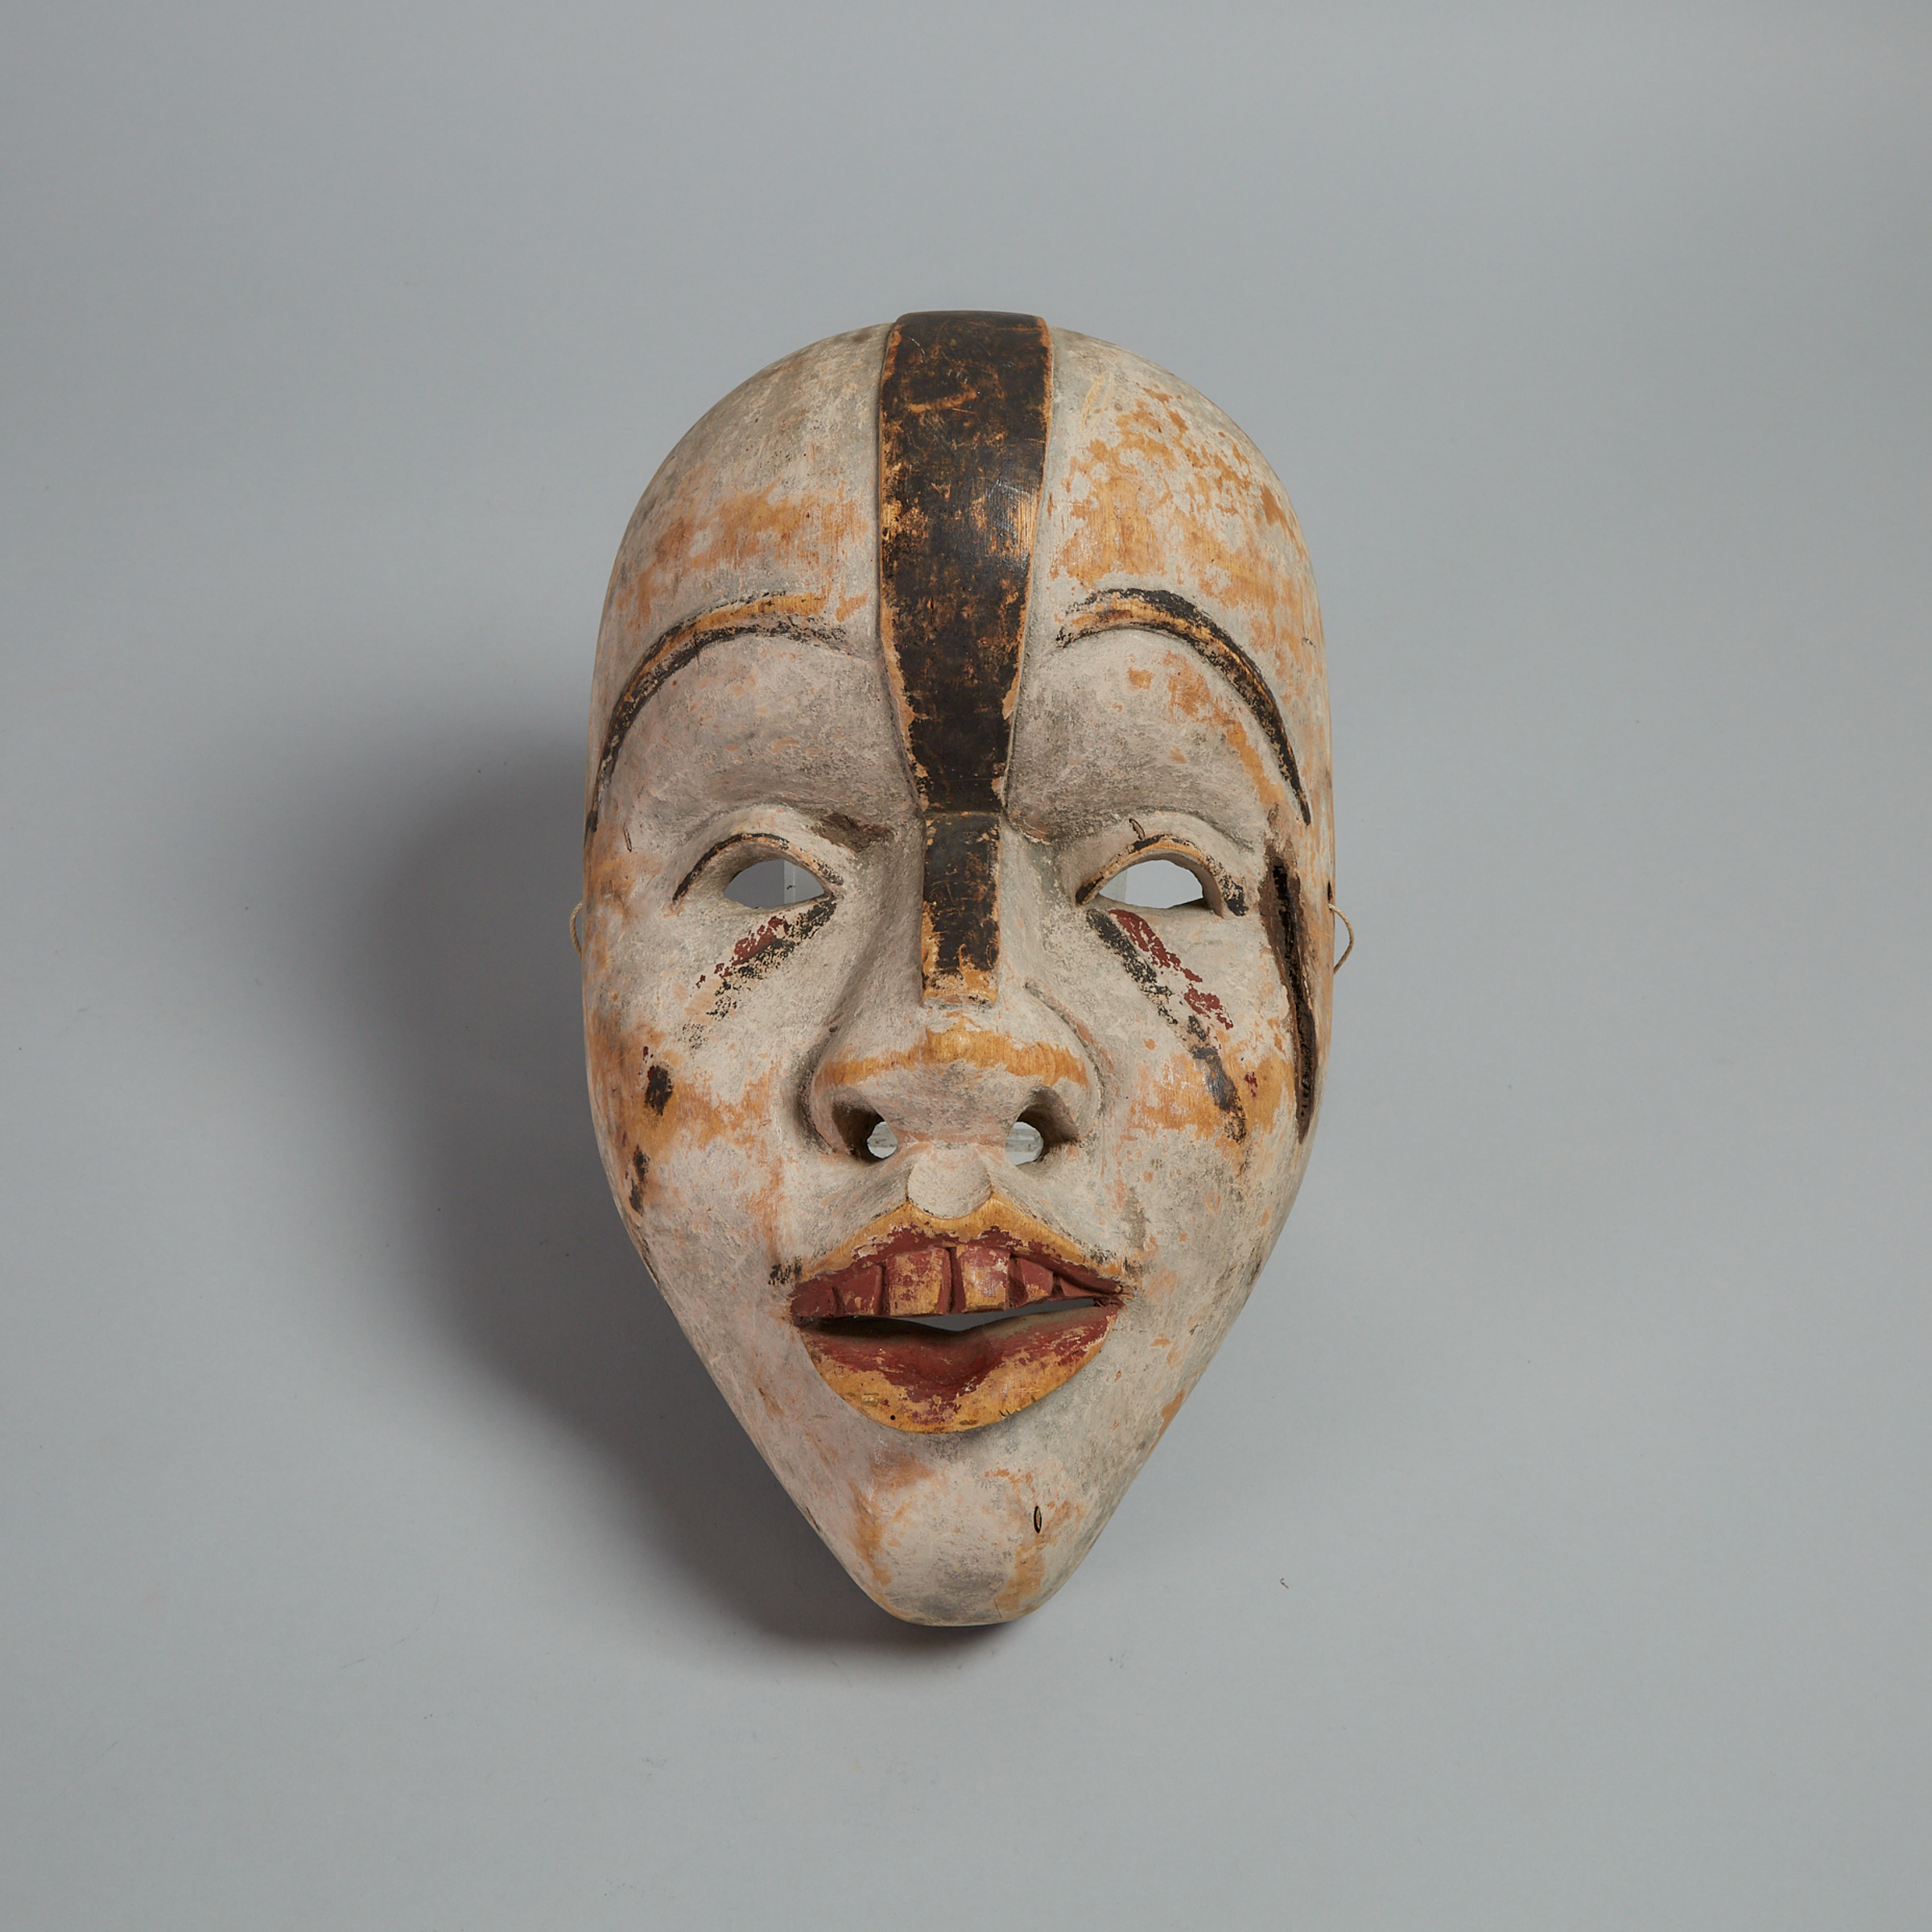 Kongo Woyo Mask, Democratic Republic of Congo, Central Africa